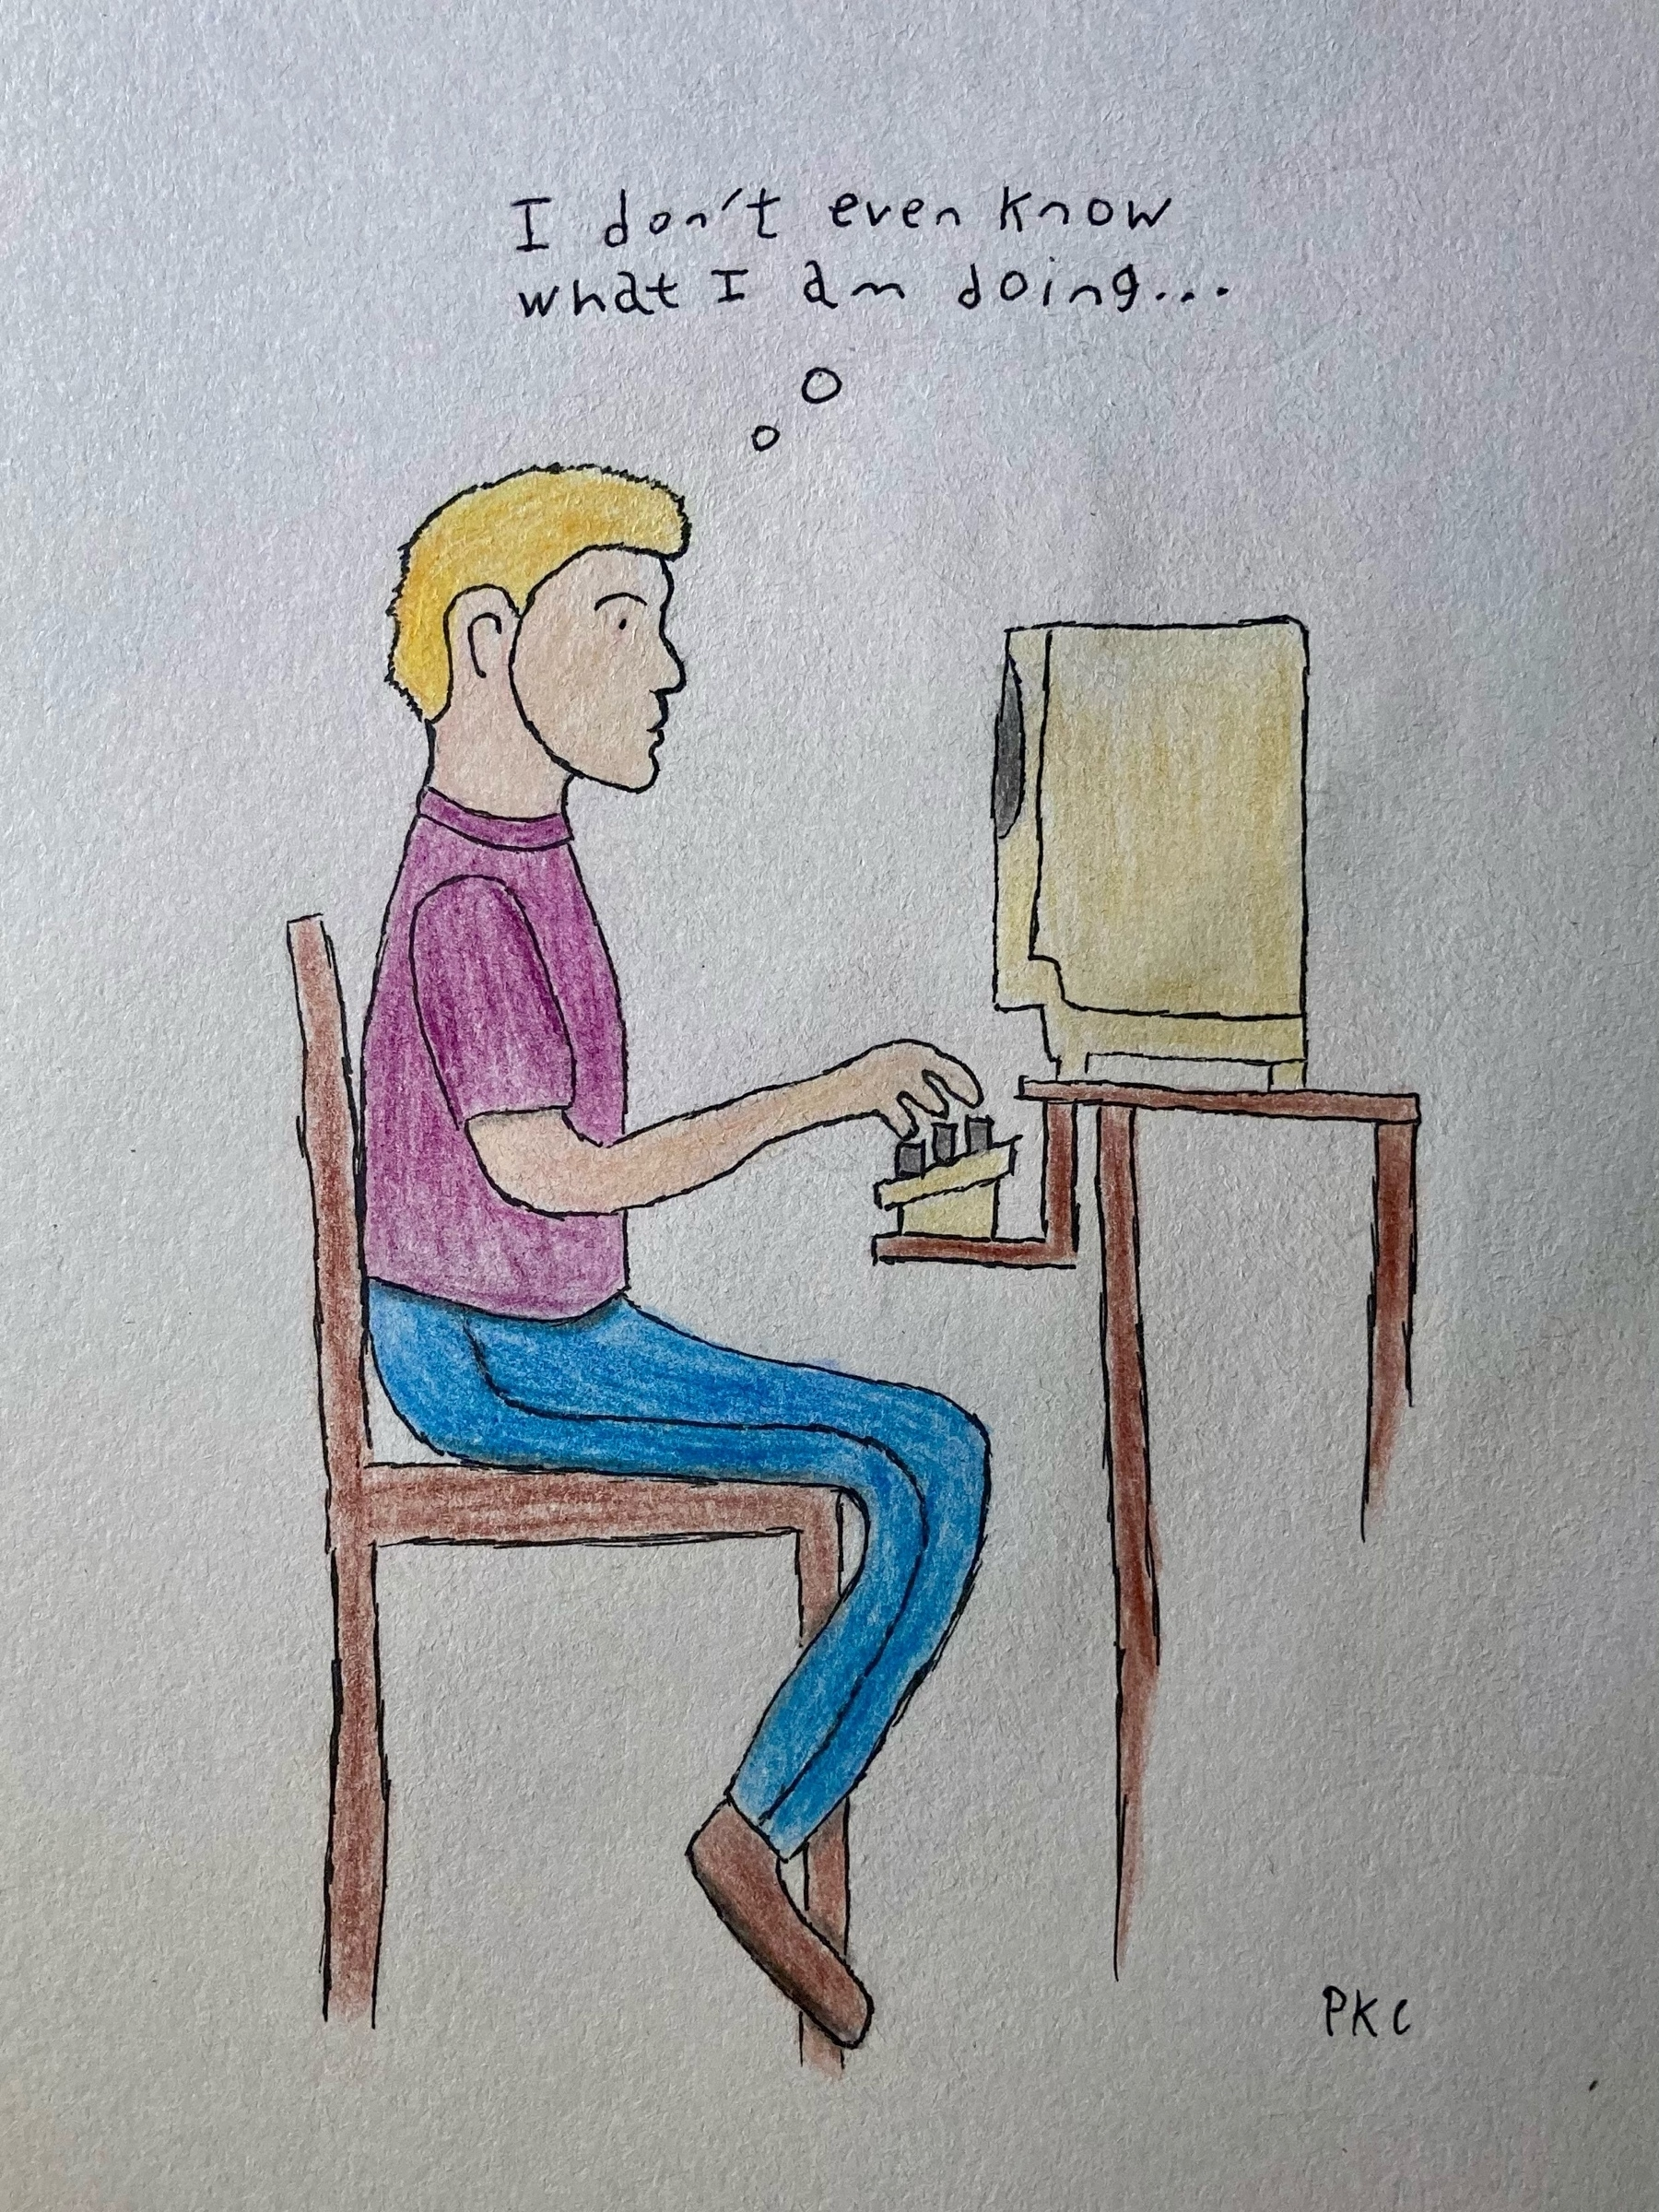 blond man sitting at computer: I don't even know what I am doing